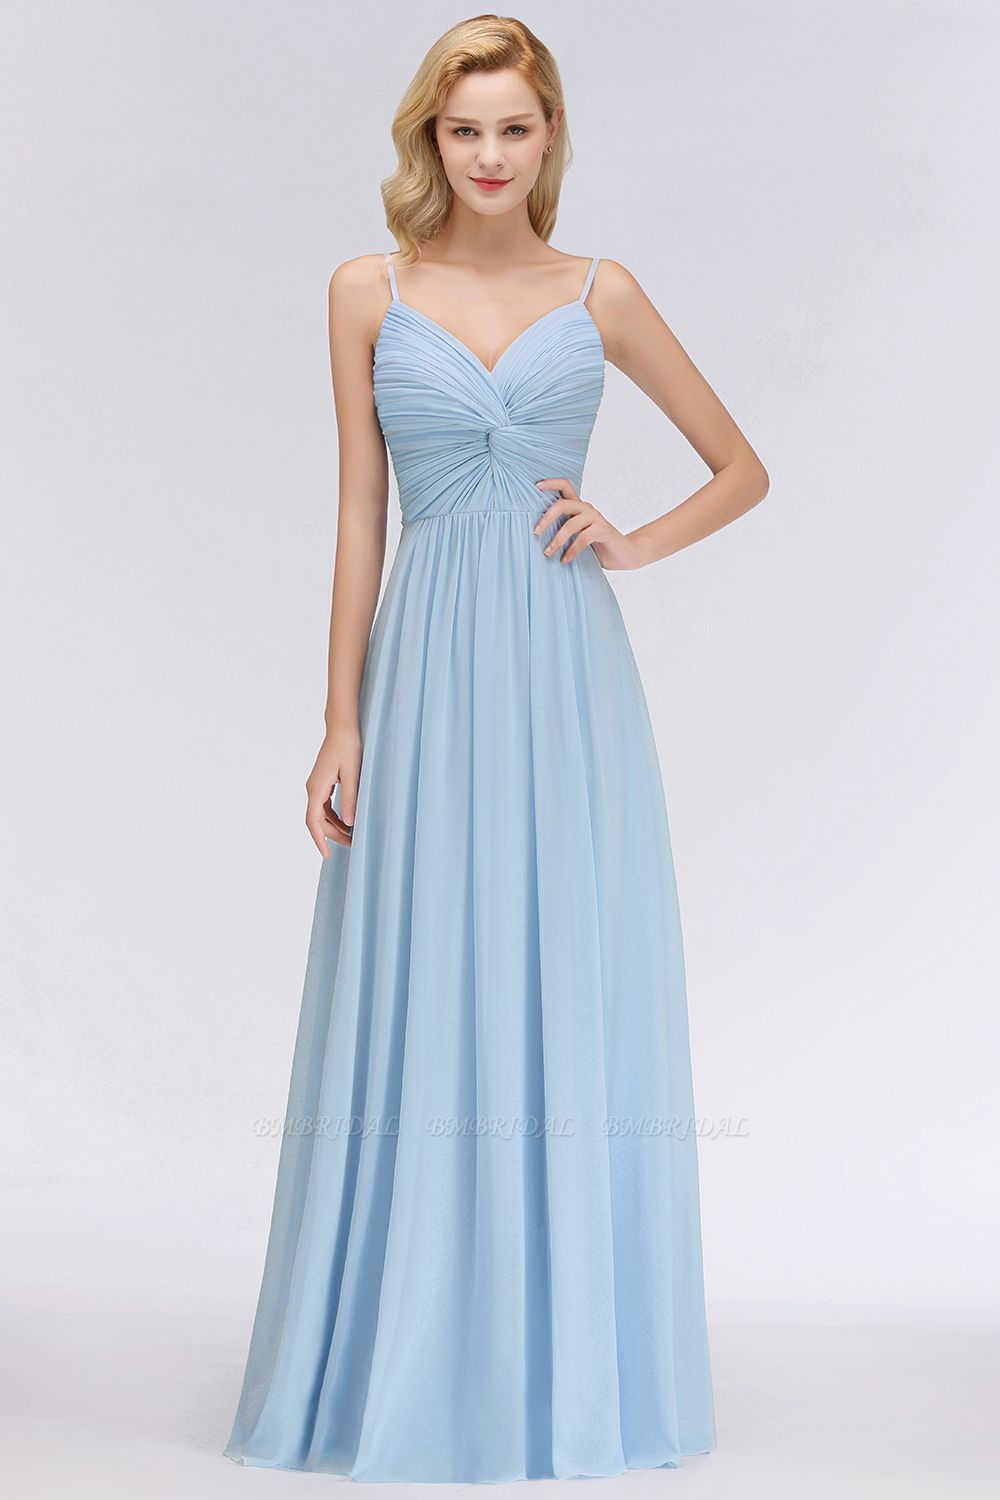 Chic V-Neck Pleated Backless Bridesmaid Dresses with Spaghetti Straps